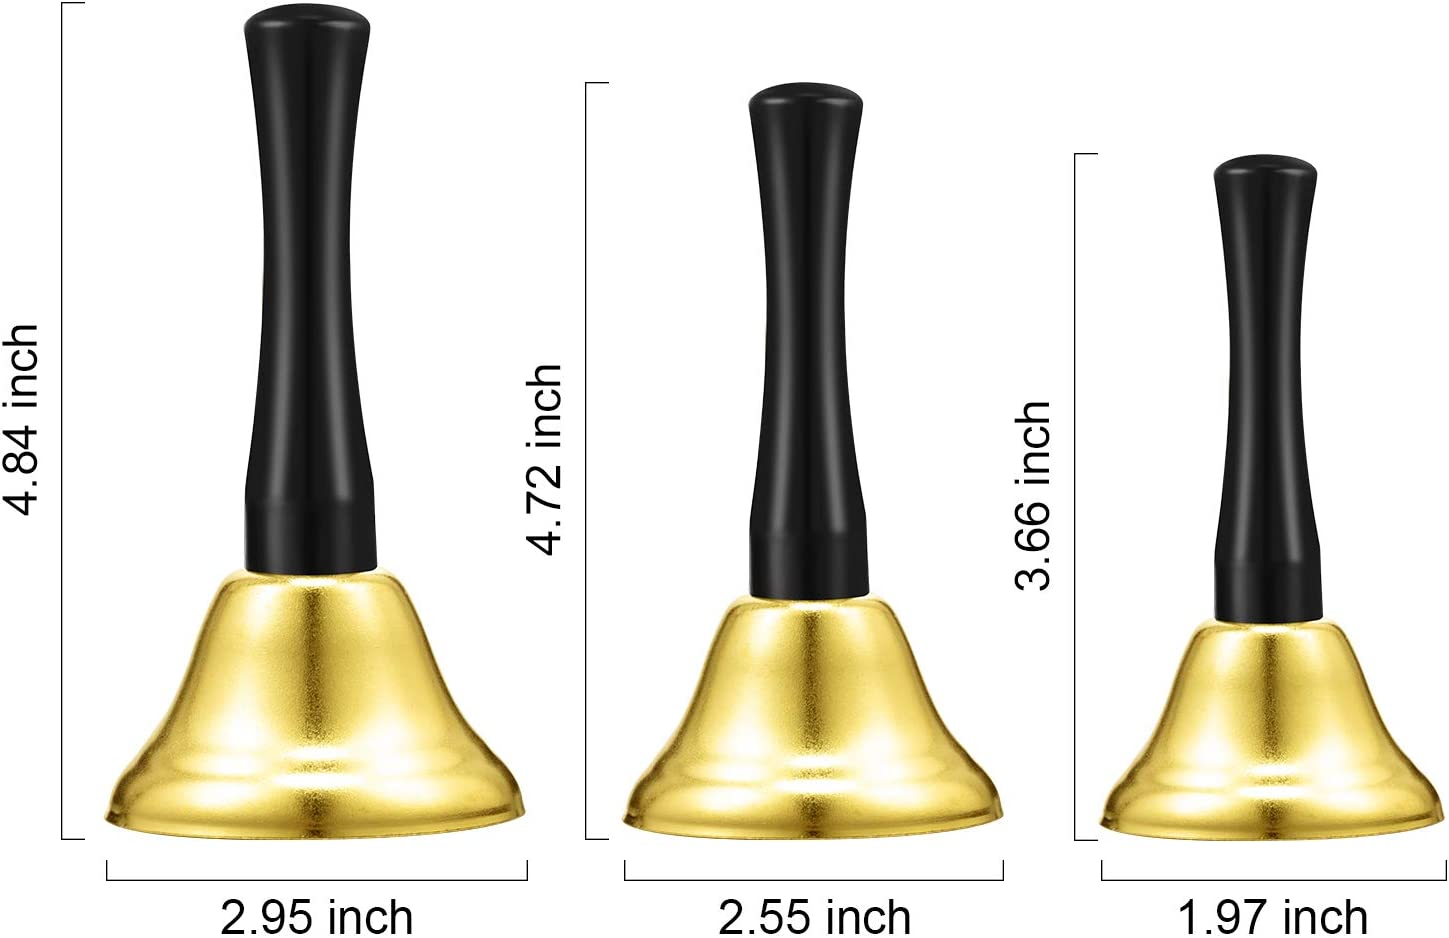 Gold 3 Pieces Steel Handbell Hand Bell Call Bell Black Wooden Handle Diatonic Metal Bells Musical Percussion